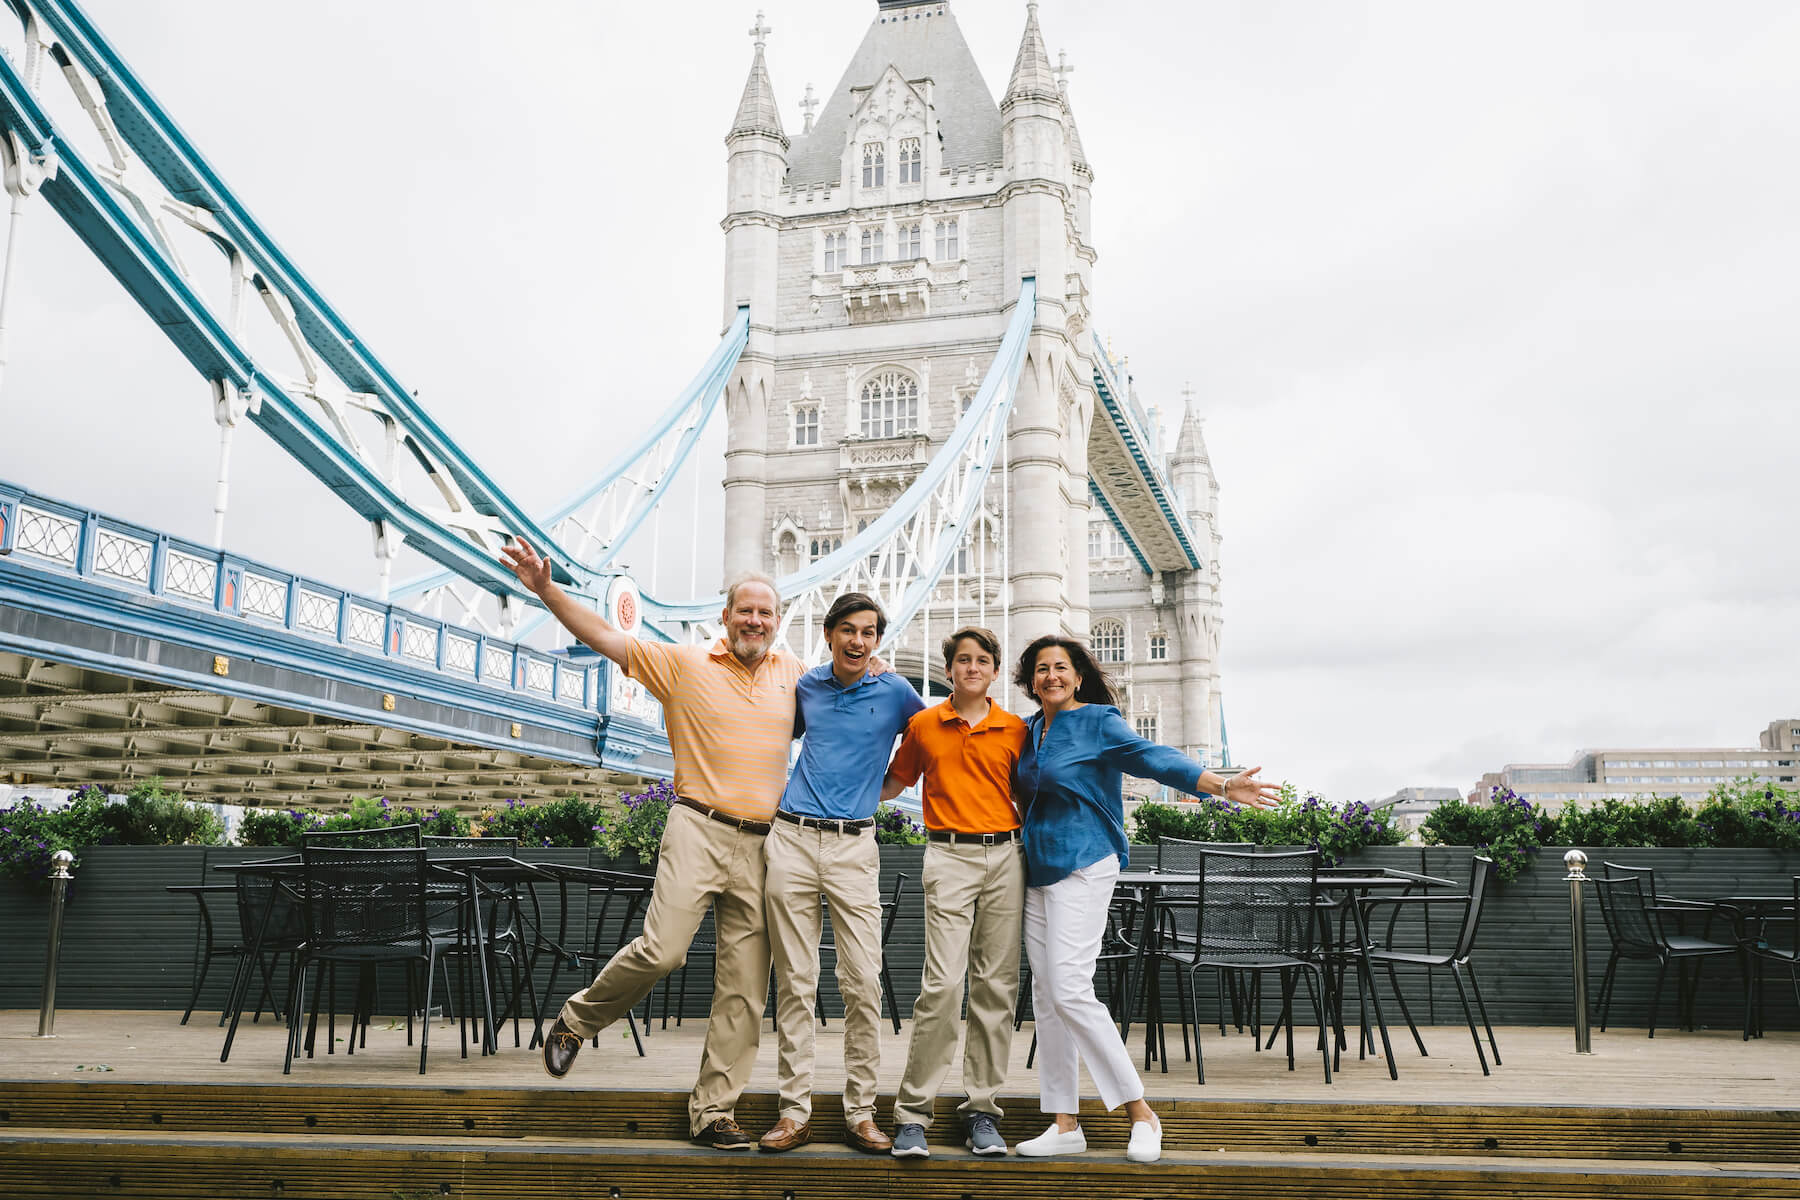 family of four in London, England with the tower bridge in the background